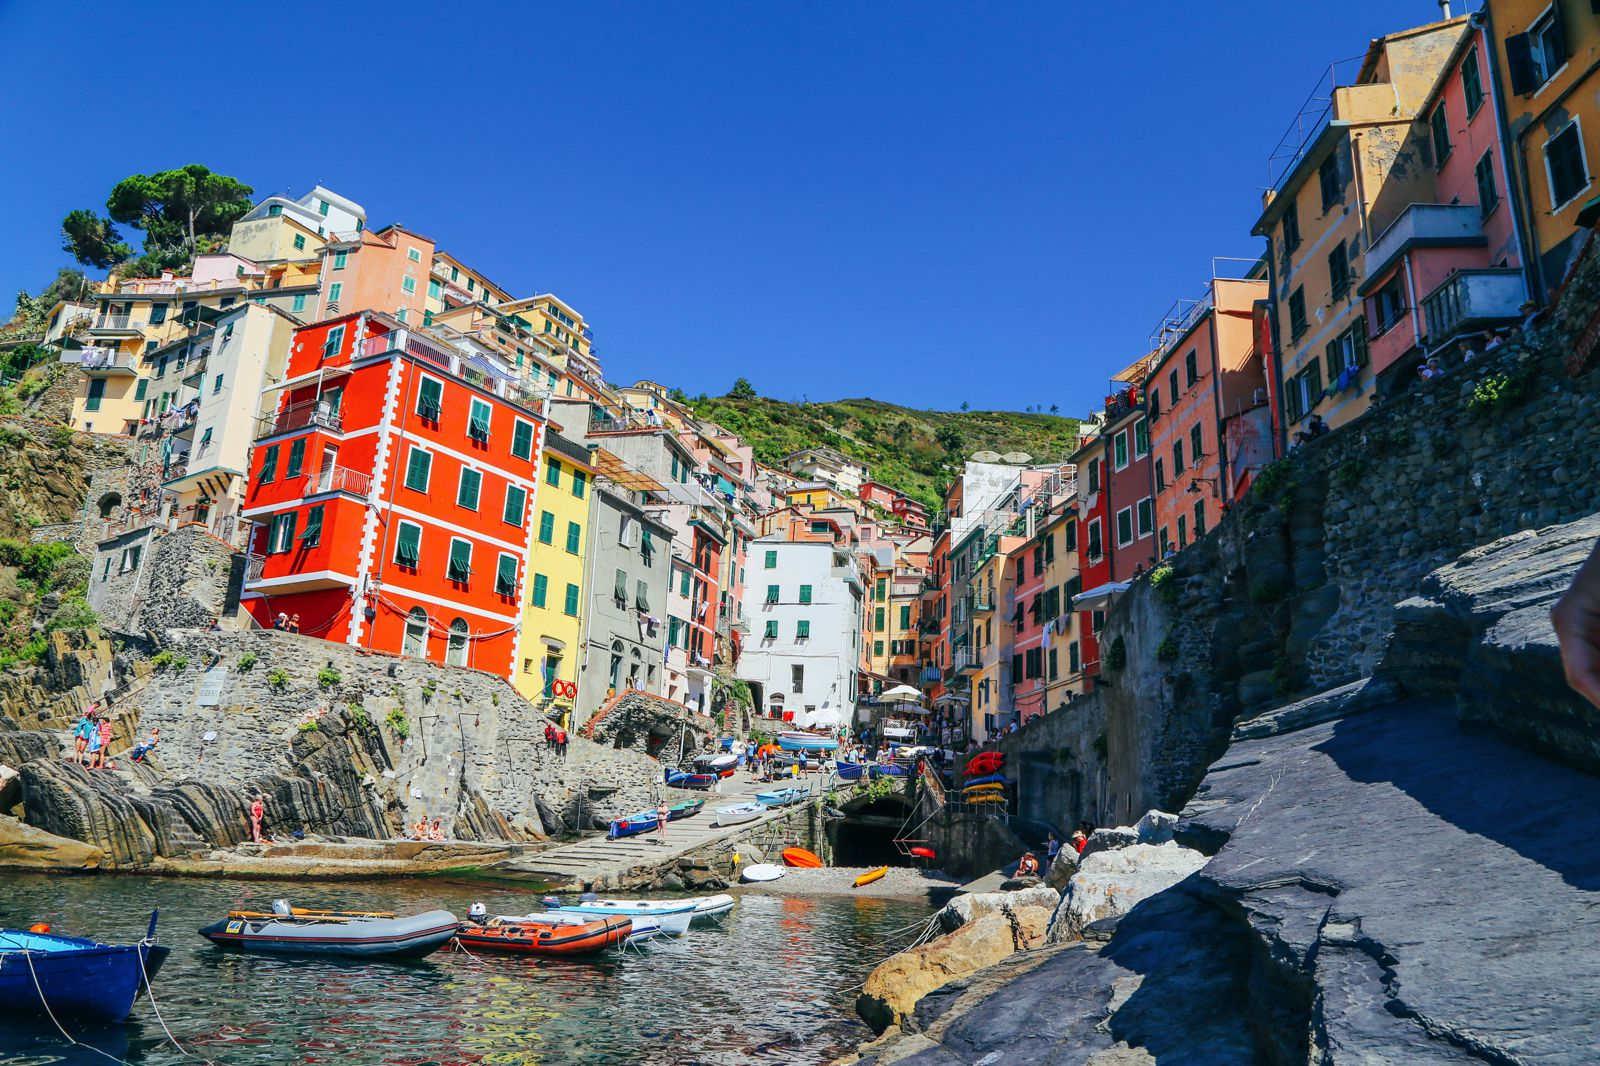 Italian Language Courses Between Cinque Terre and Portofino